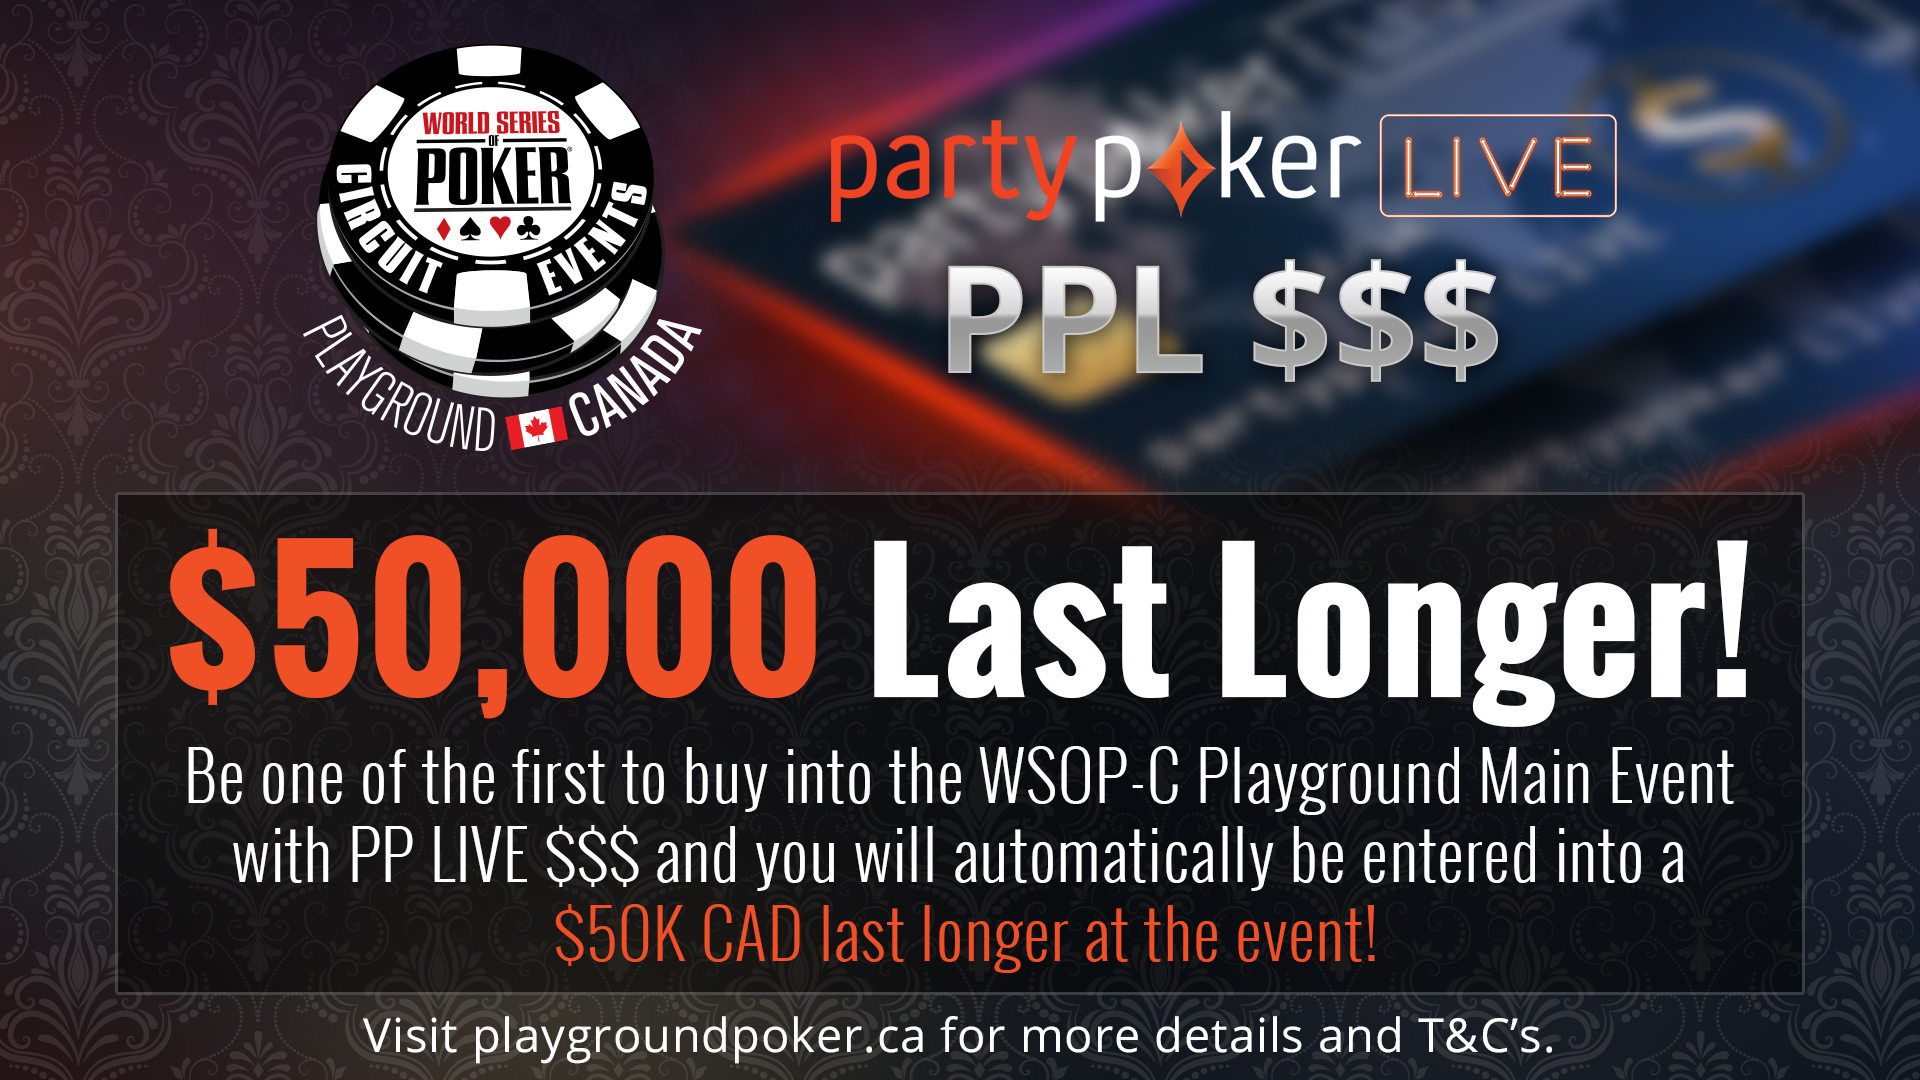 A $50K Last Longer at the WSOP-C Playground